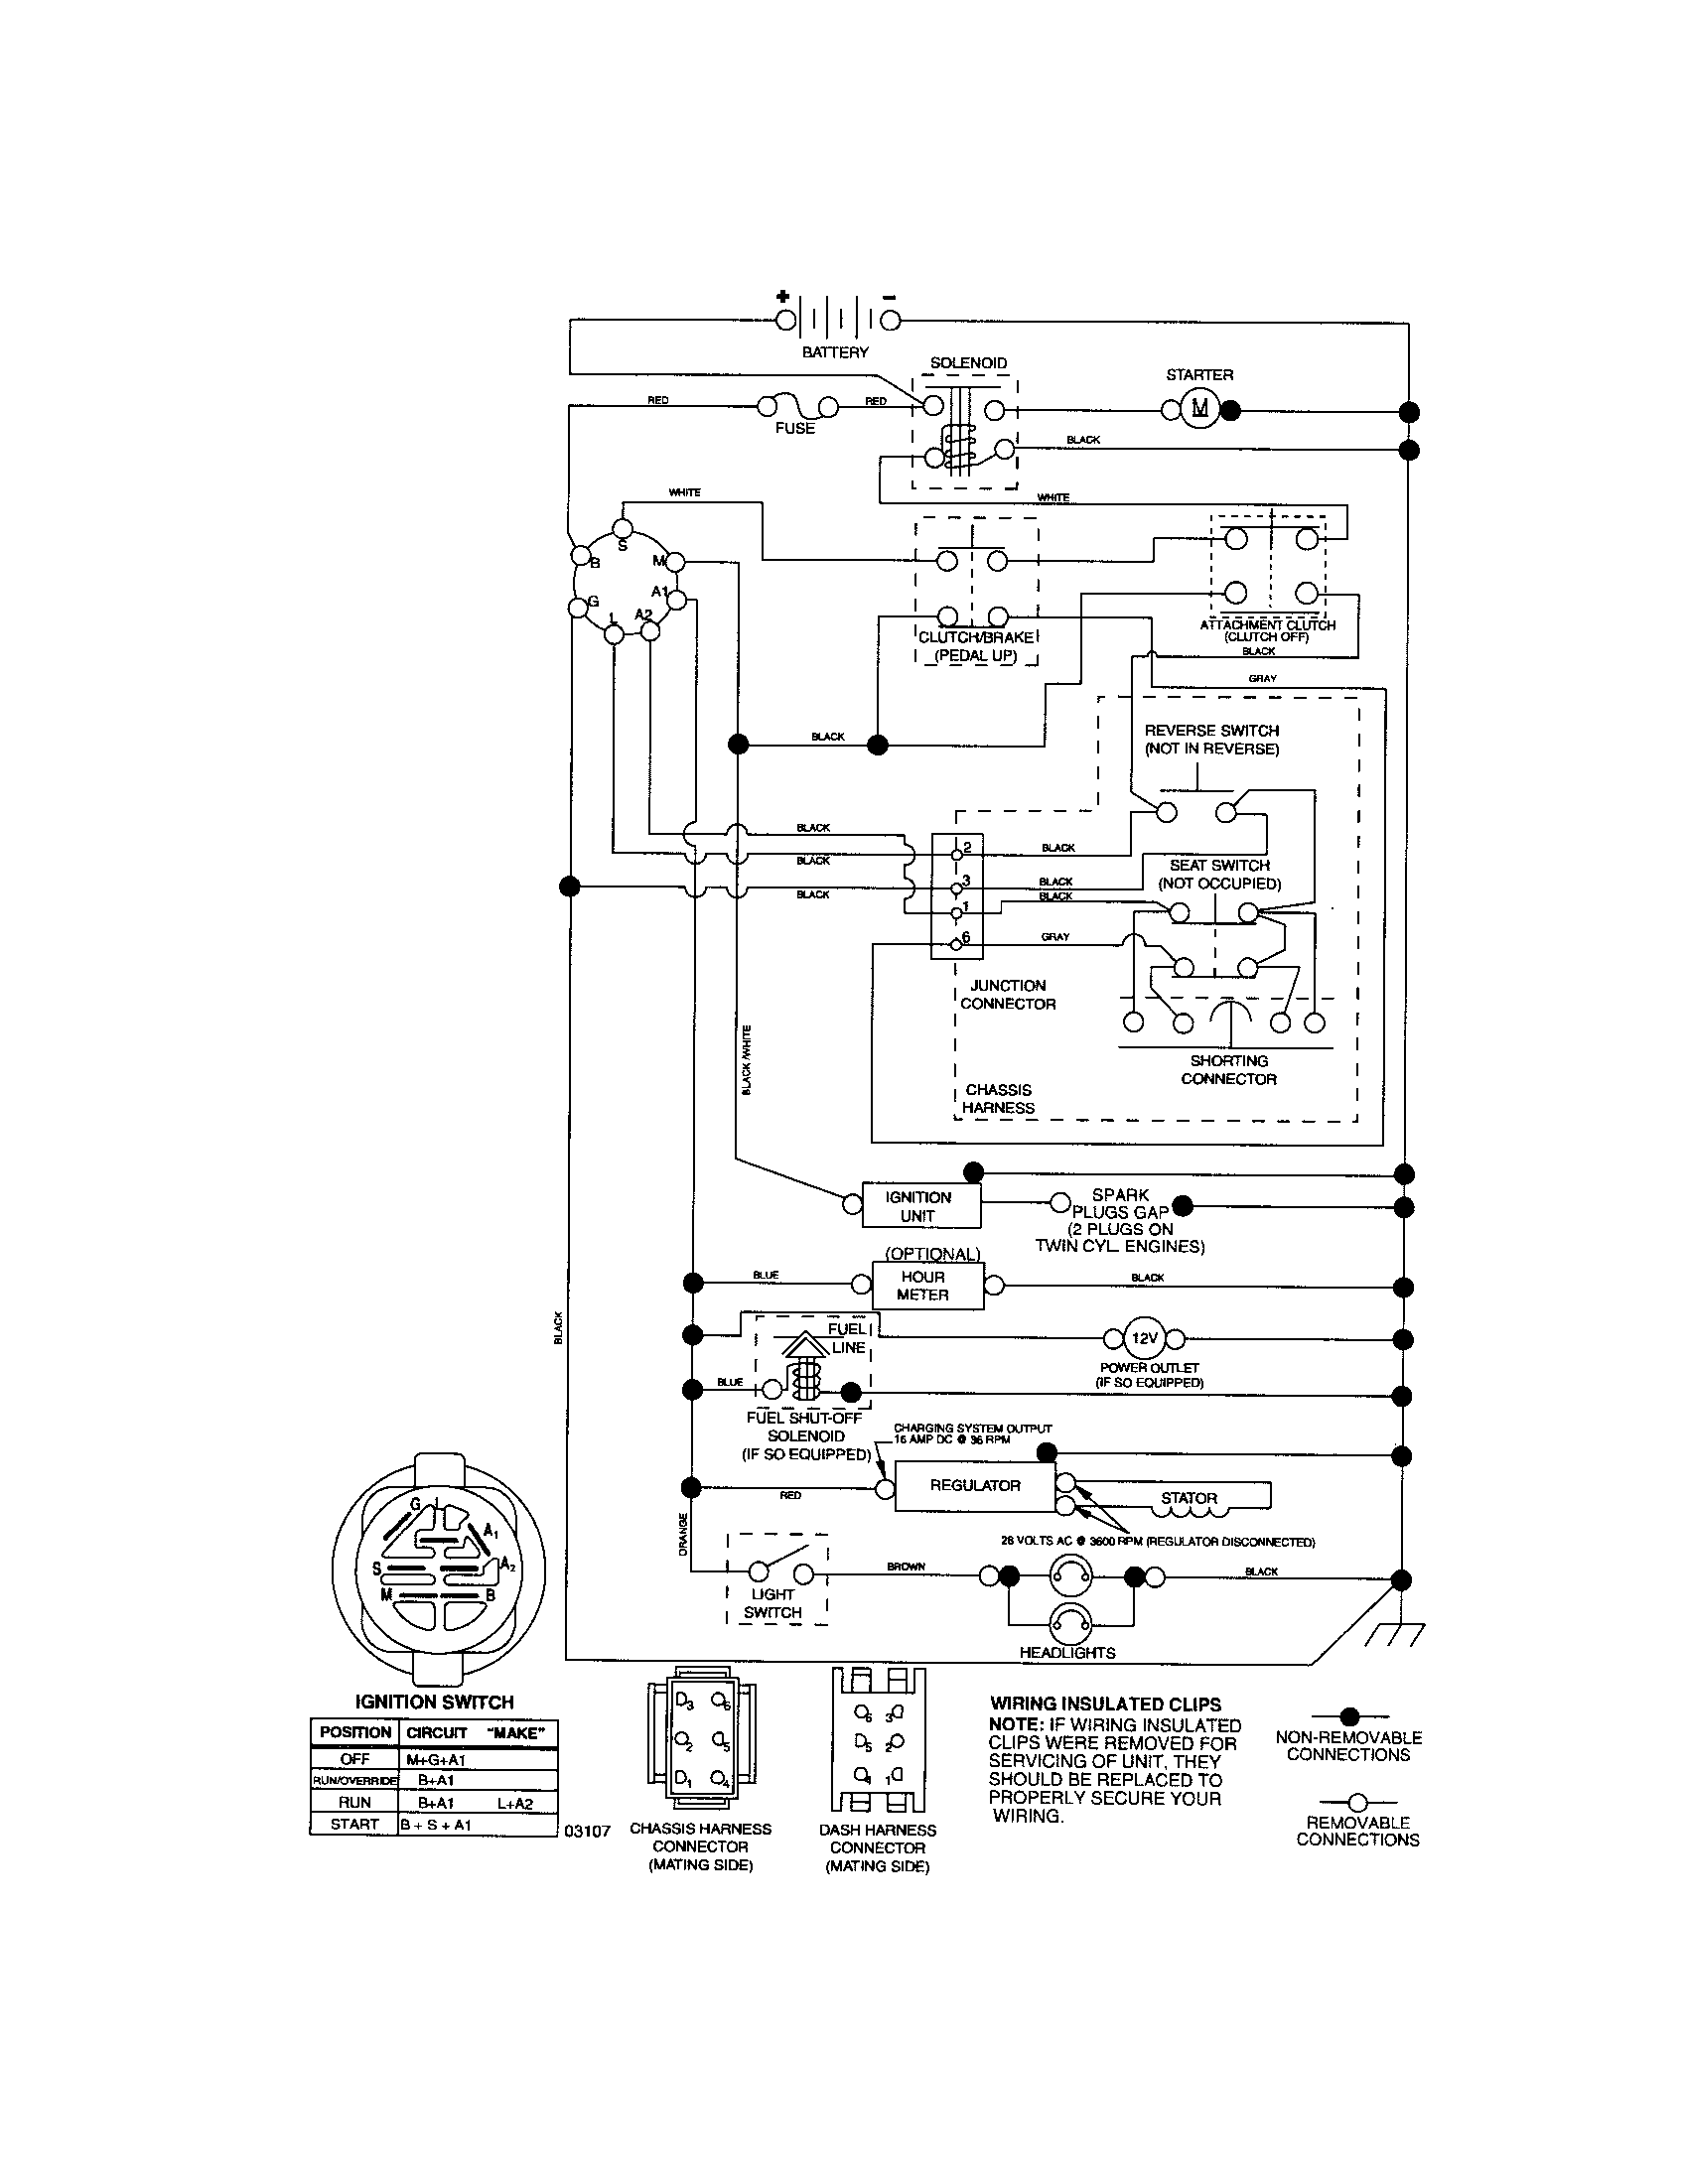 6af5f1447fd13c8443376822ddc1e105 craftsman riding mower electrical diagram wiring diagram All Lawn Mower Wiring Diagrams at nearapp.co